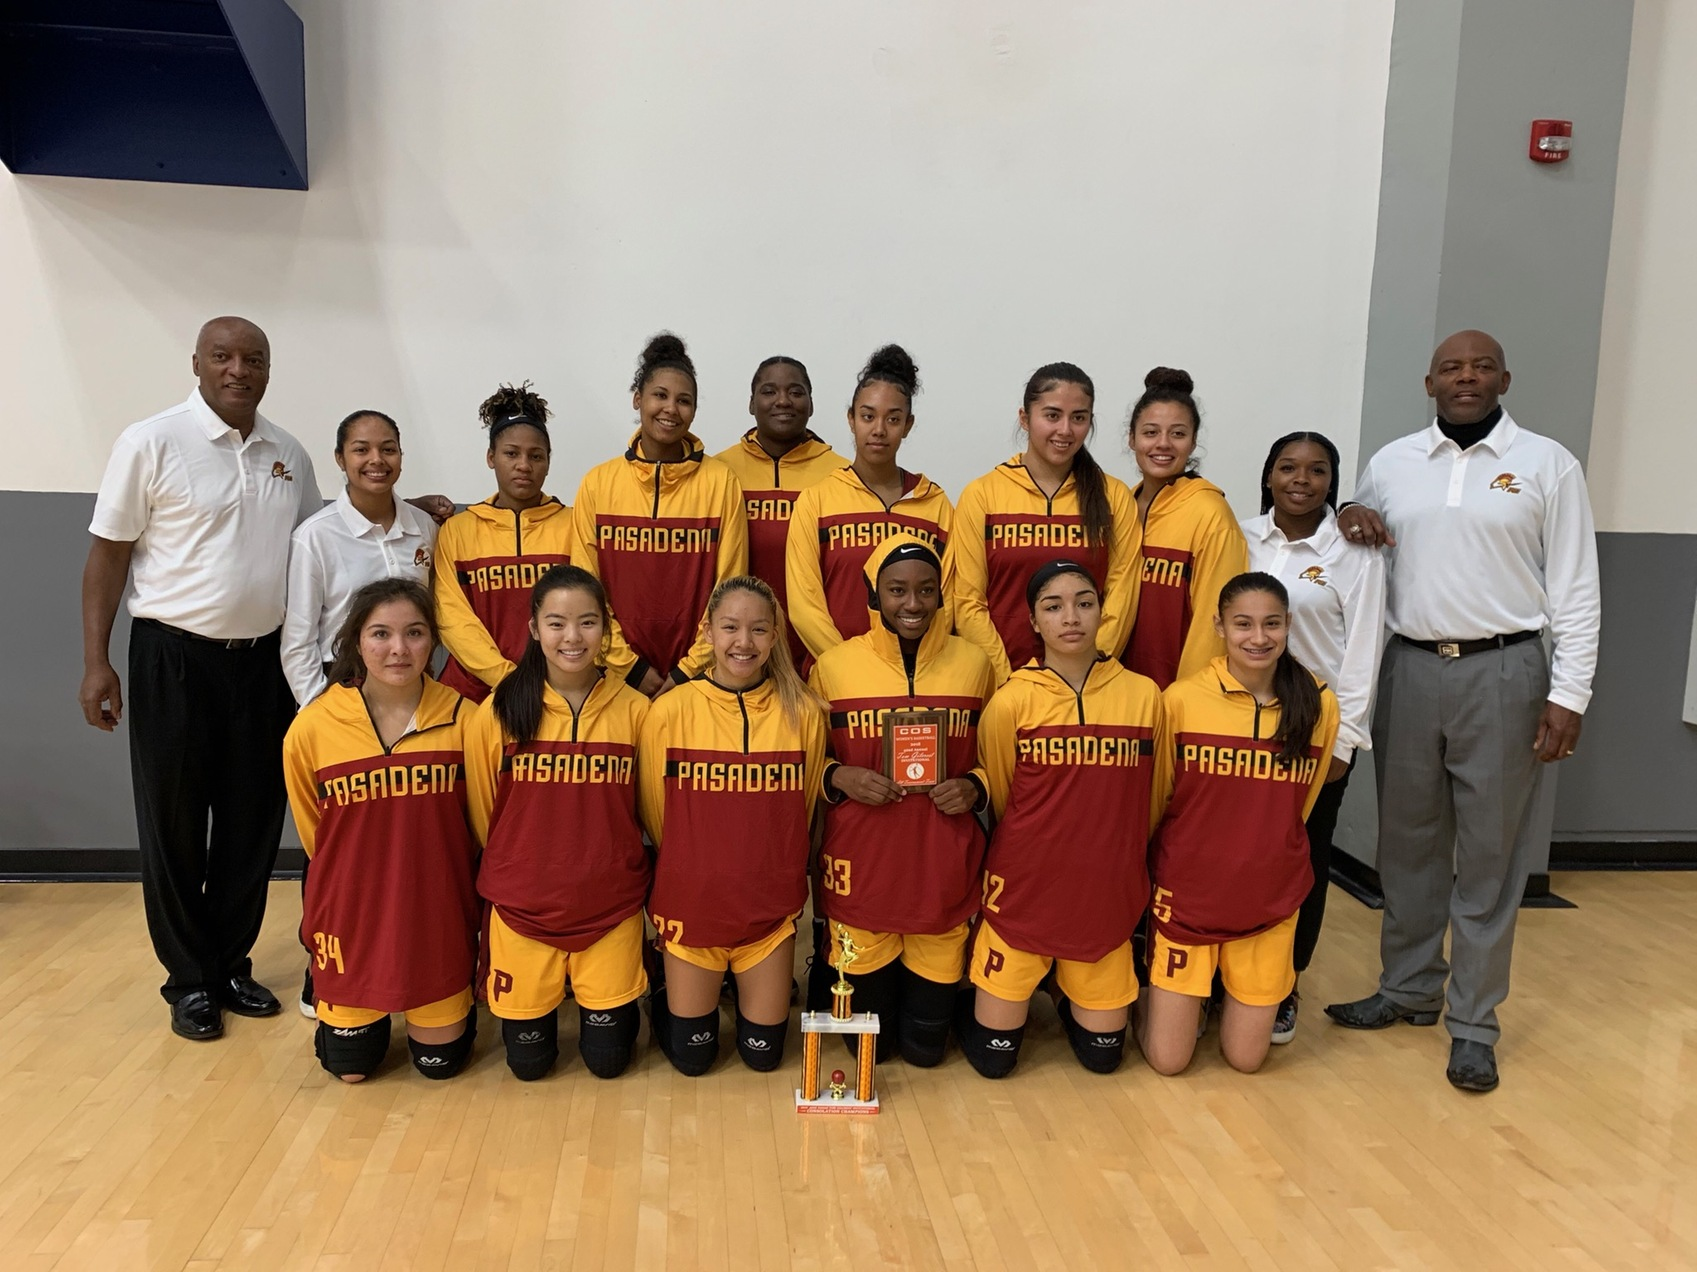 The PCC women's basketball squad takes a team shot following their consolation title at the College of the Sequoias tournament.